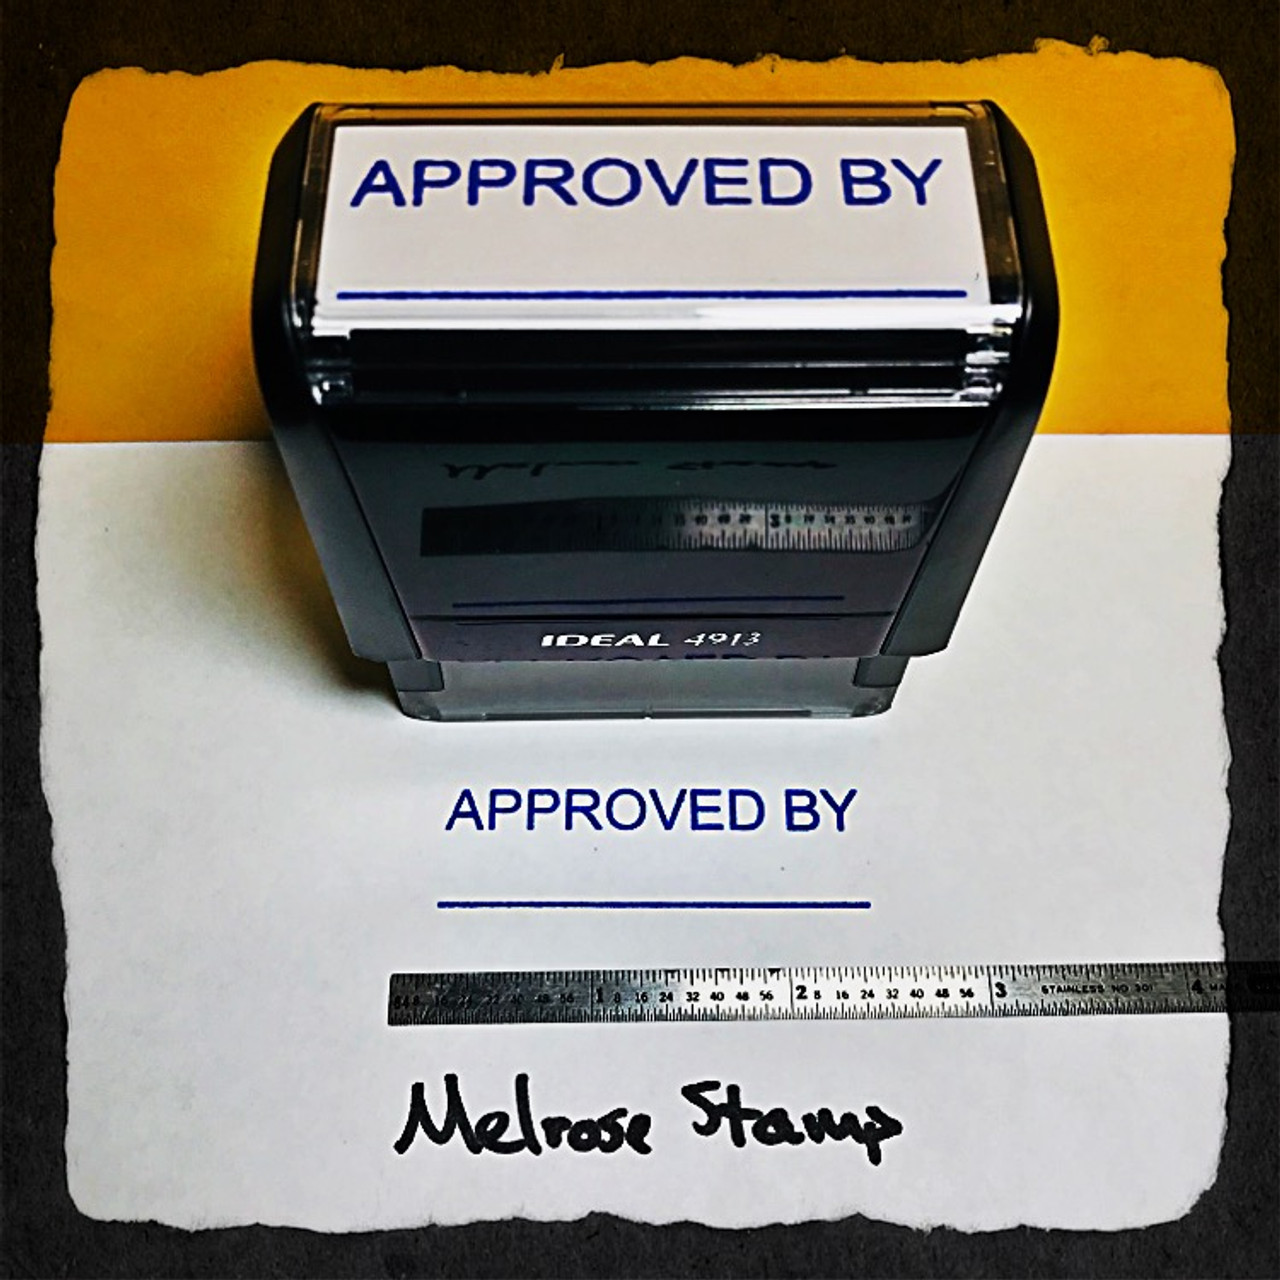 Approved By Stamp Blue Ink Large